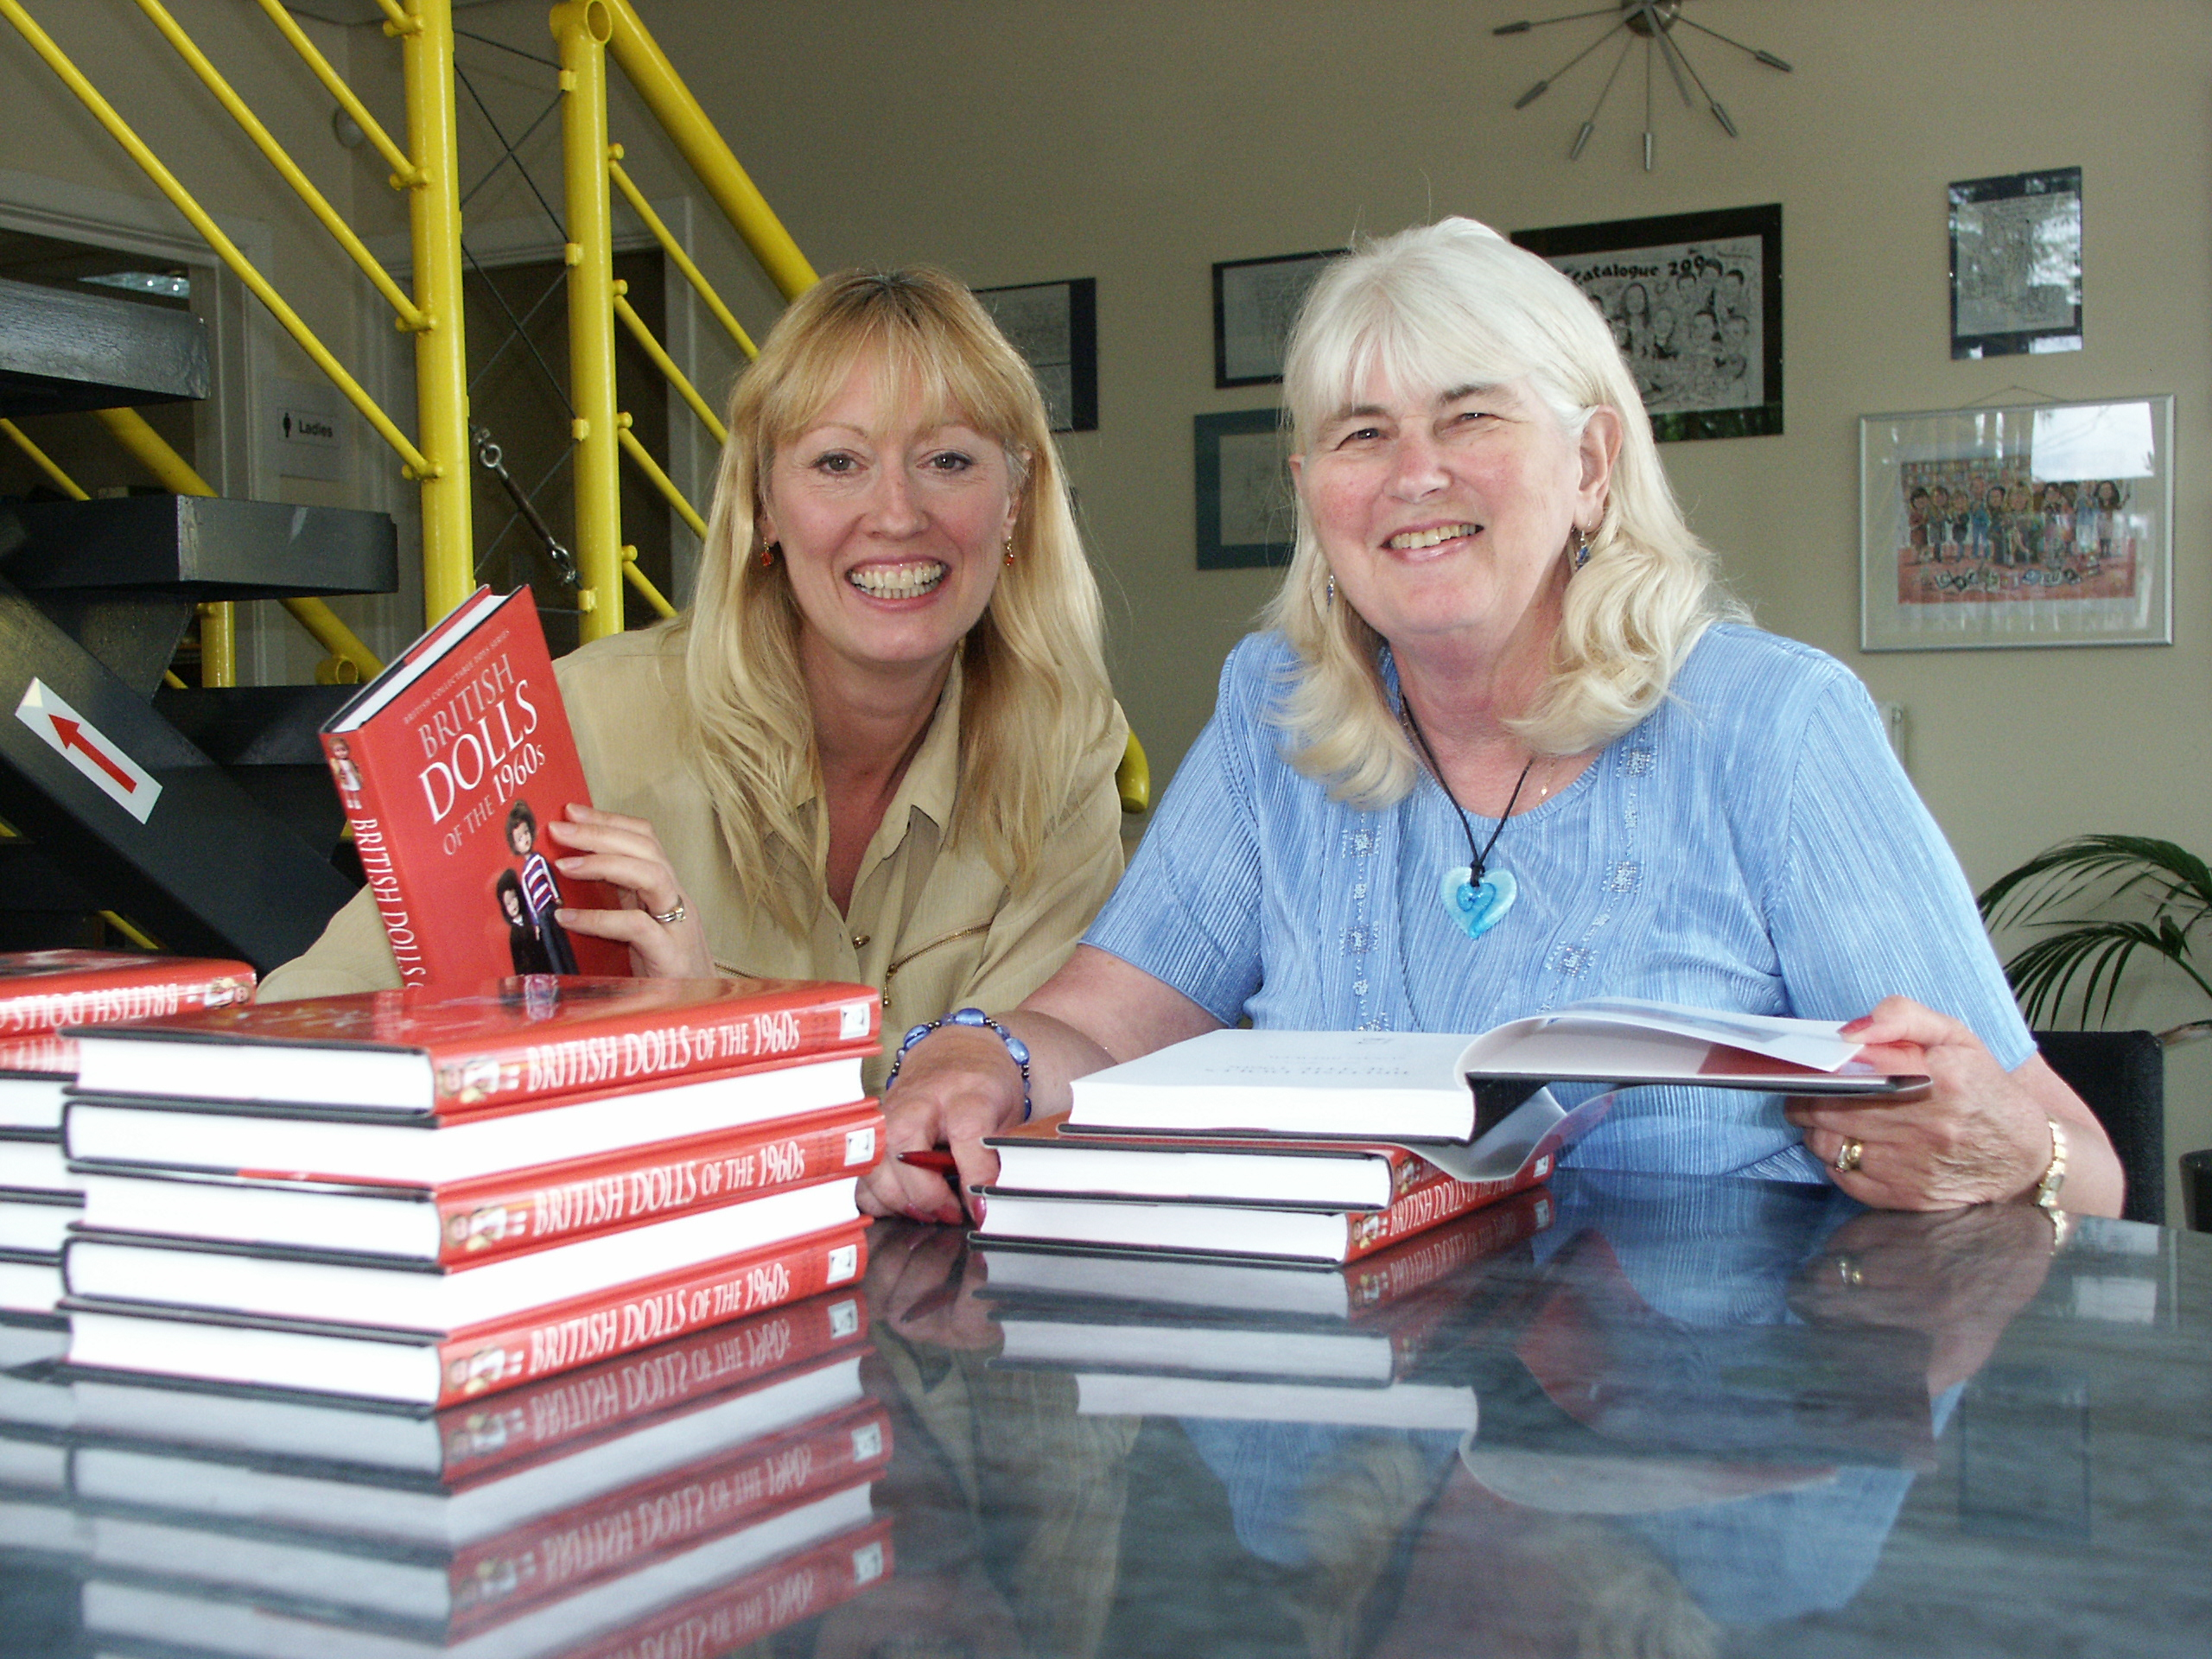 Sue Brewer and Annie 4th July 2012 signing \'British Dolls of the 1950s\', \'British Dolls of the 1960s\'. She is author of \'Collecting Classic Girl\'s Toys\', \'History of Girls\' Comics\', \'Classic Playground Games\' , \'British Dolls of the 1950s\', \'British Dolls of the 1960s\', \'Collecting Autographs\', \'Famous Character Dolls\', \'Tiny Tears and First Love; A Celebration of Two Classic Baby Dolls\', \'Mike\'s Bike\'. / {Location}: Bibliophile Datapoint\\n\\n05/07/2012 13:12